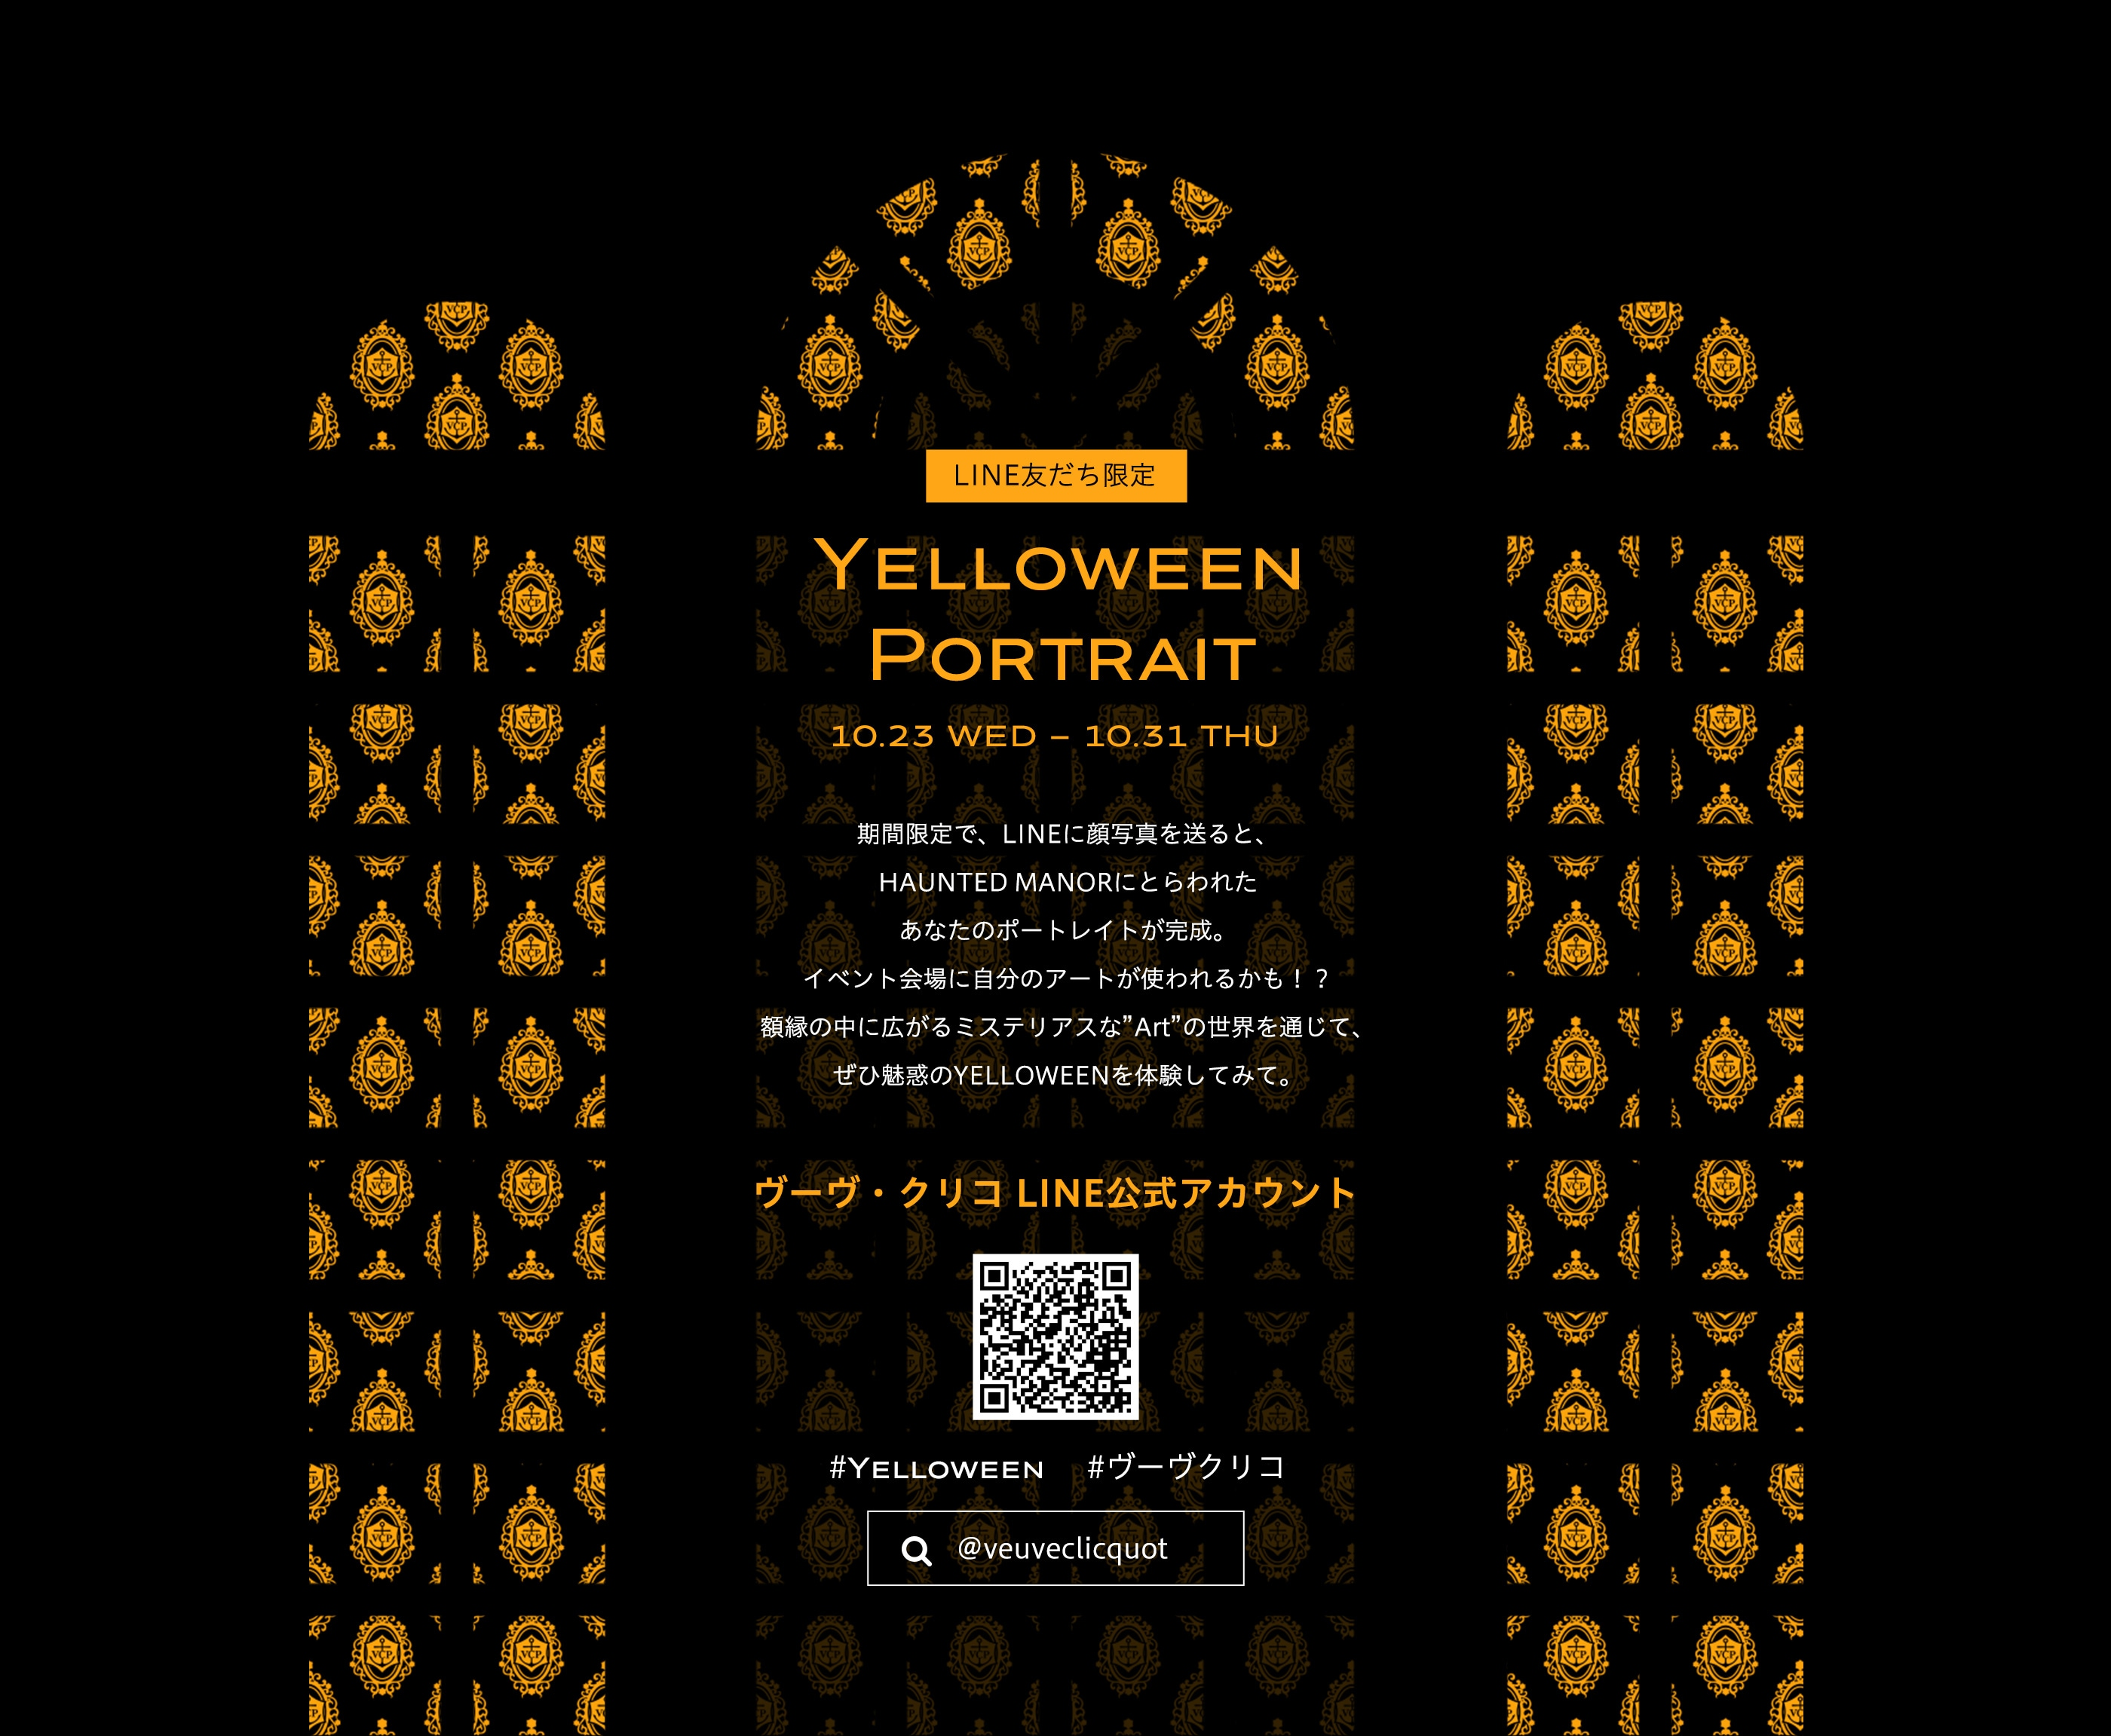 LINE友だち限定 YELLOWEEN PORTRAIT